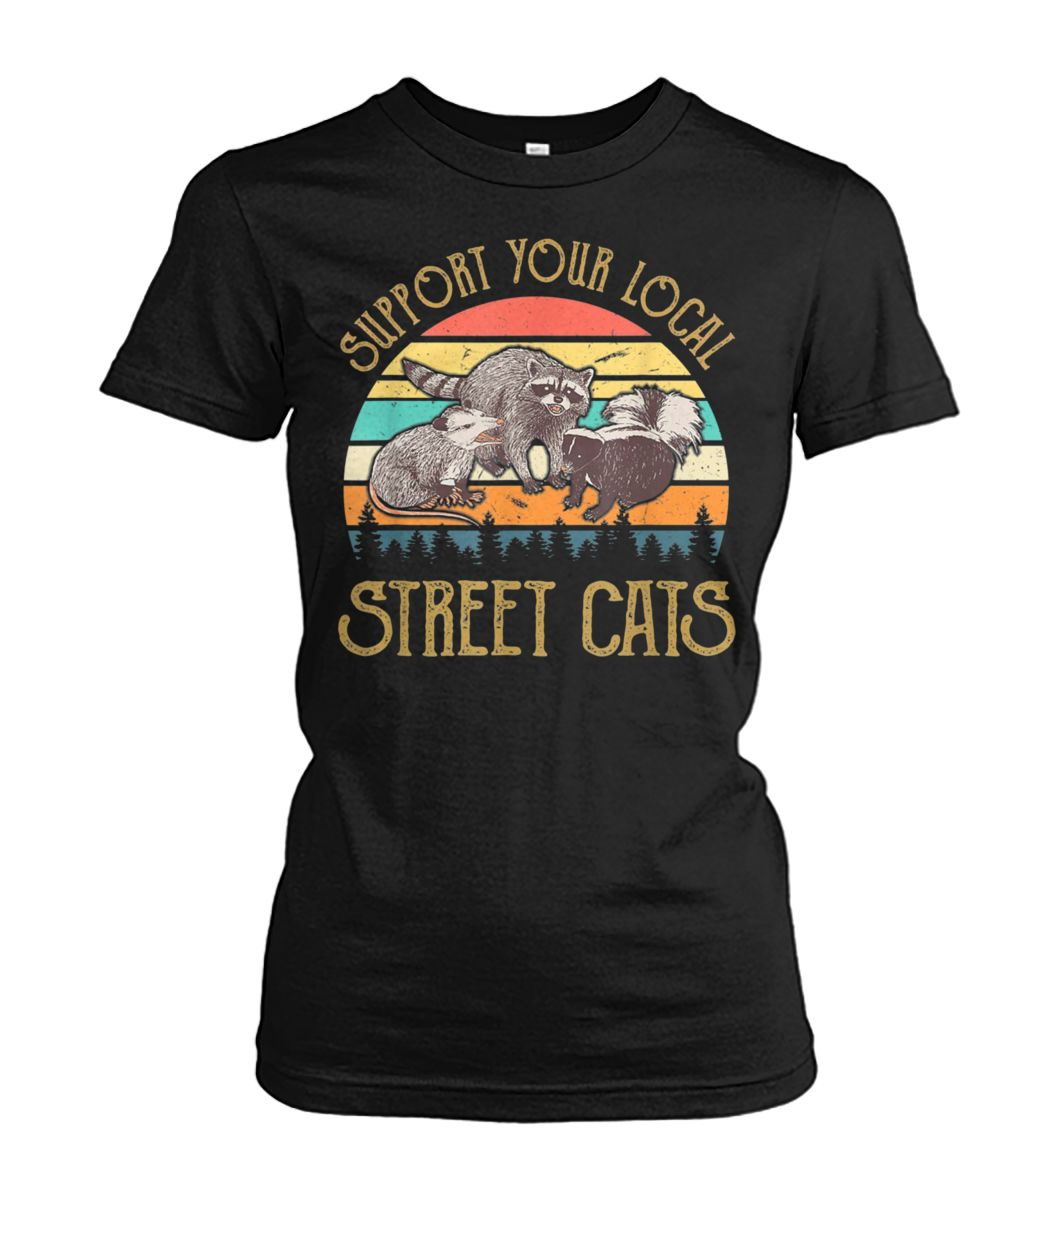 [Hot version] Vintage support your local street cats shirt